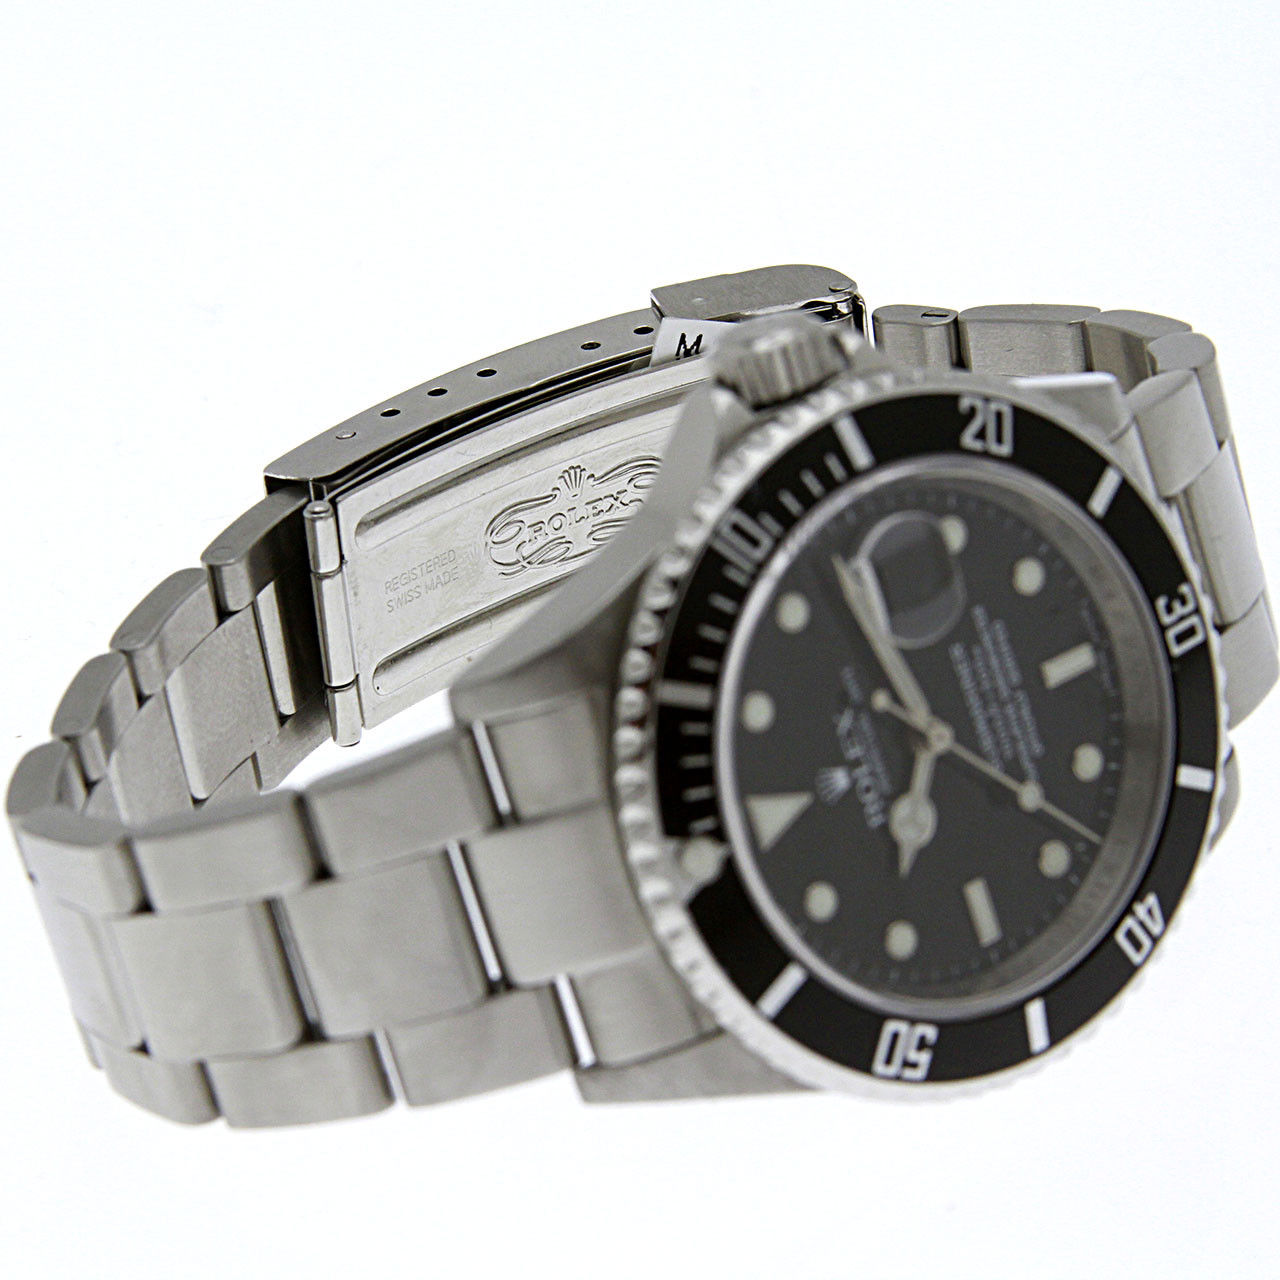 2fb95dc9ed2 Rolex Submariner Date Black Dial Bezel Oyster Stainless Steel M-Serial 16610